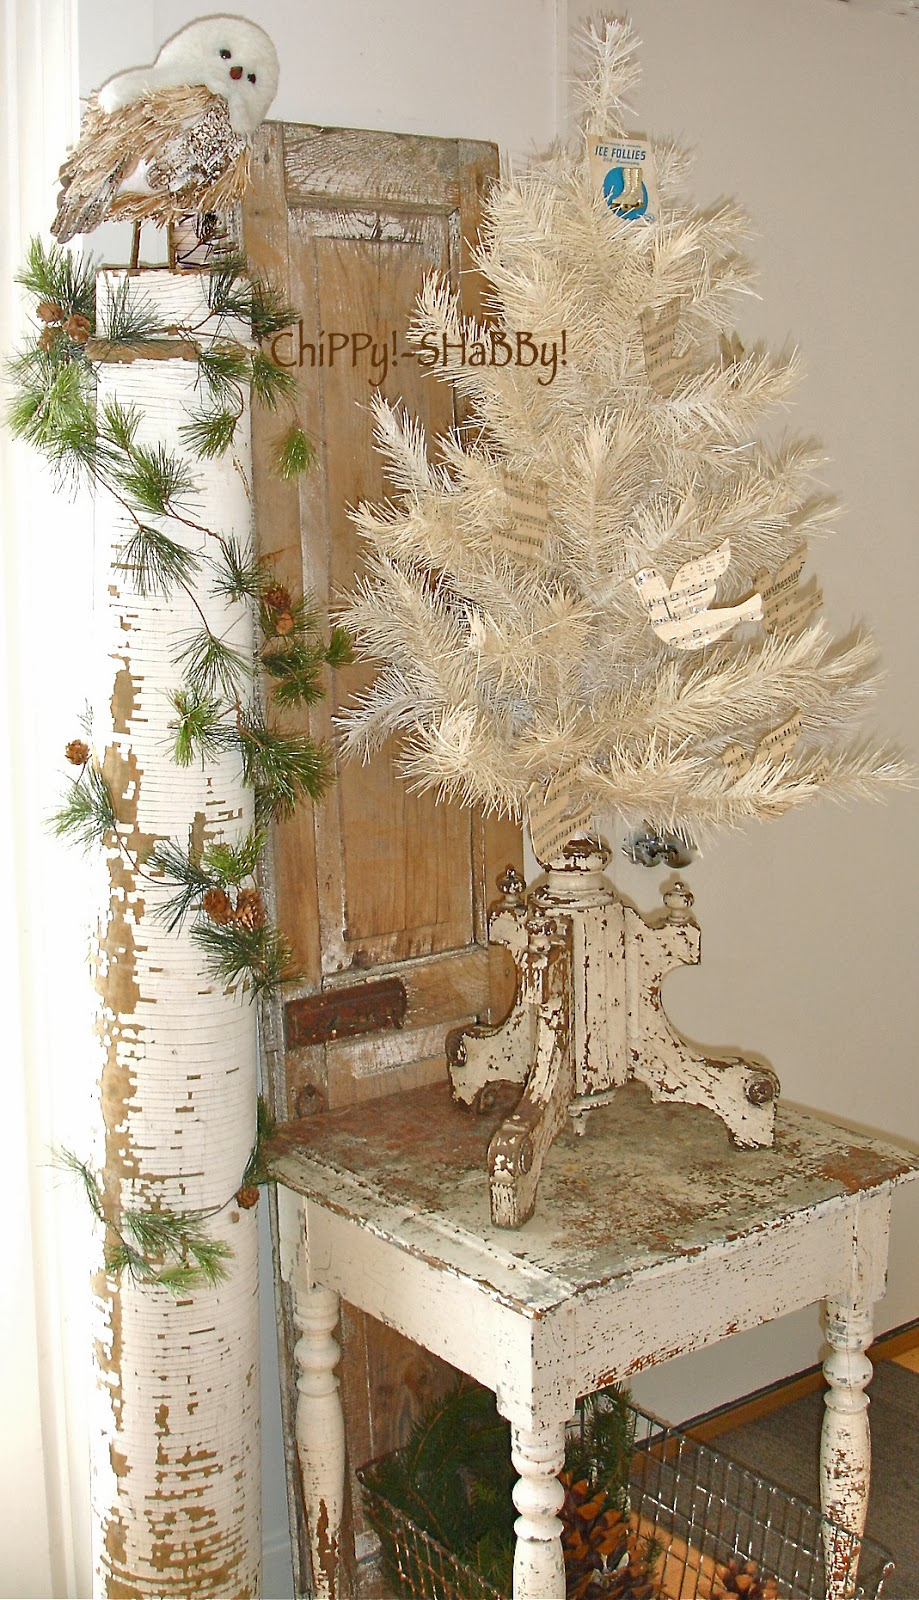 Chippy Shabby Christmas Themed Displays Using Vintage